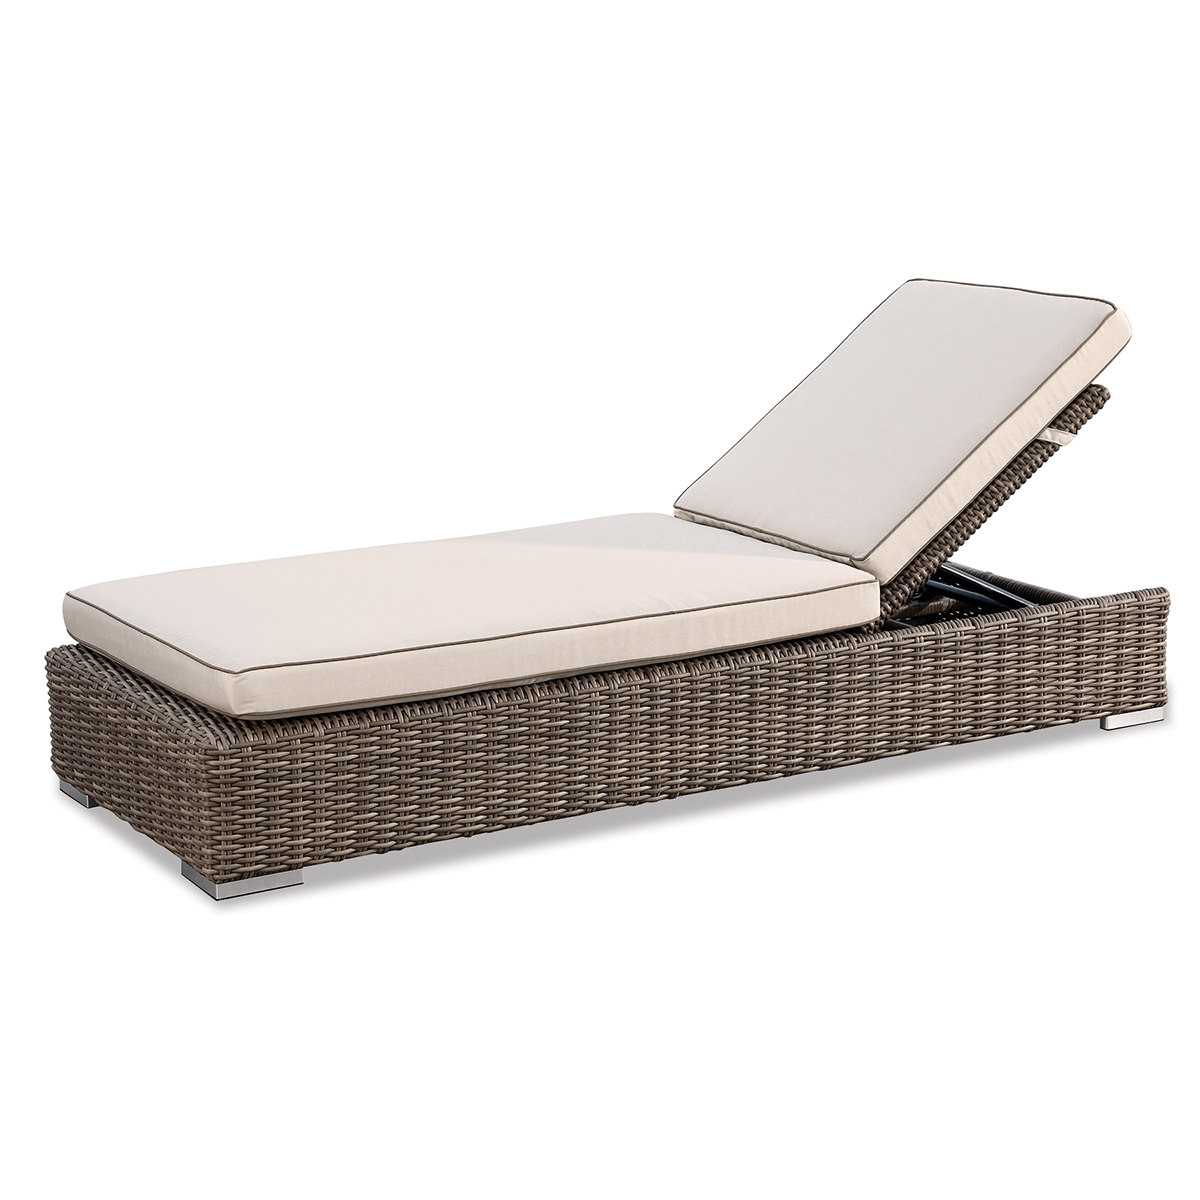 Favorite Wicker Outdoor Chaise Lounges For Wicker Chaise Lounge Outdoor With Pillows Unforgettable Patio (View 5 of 15)